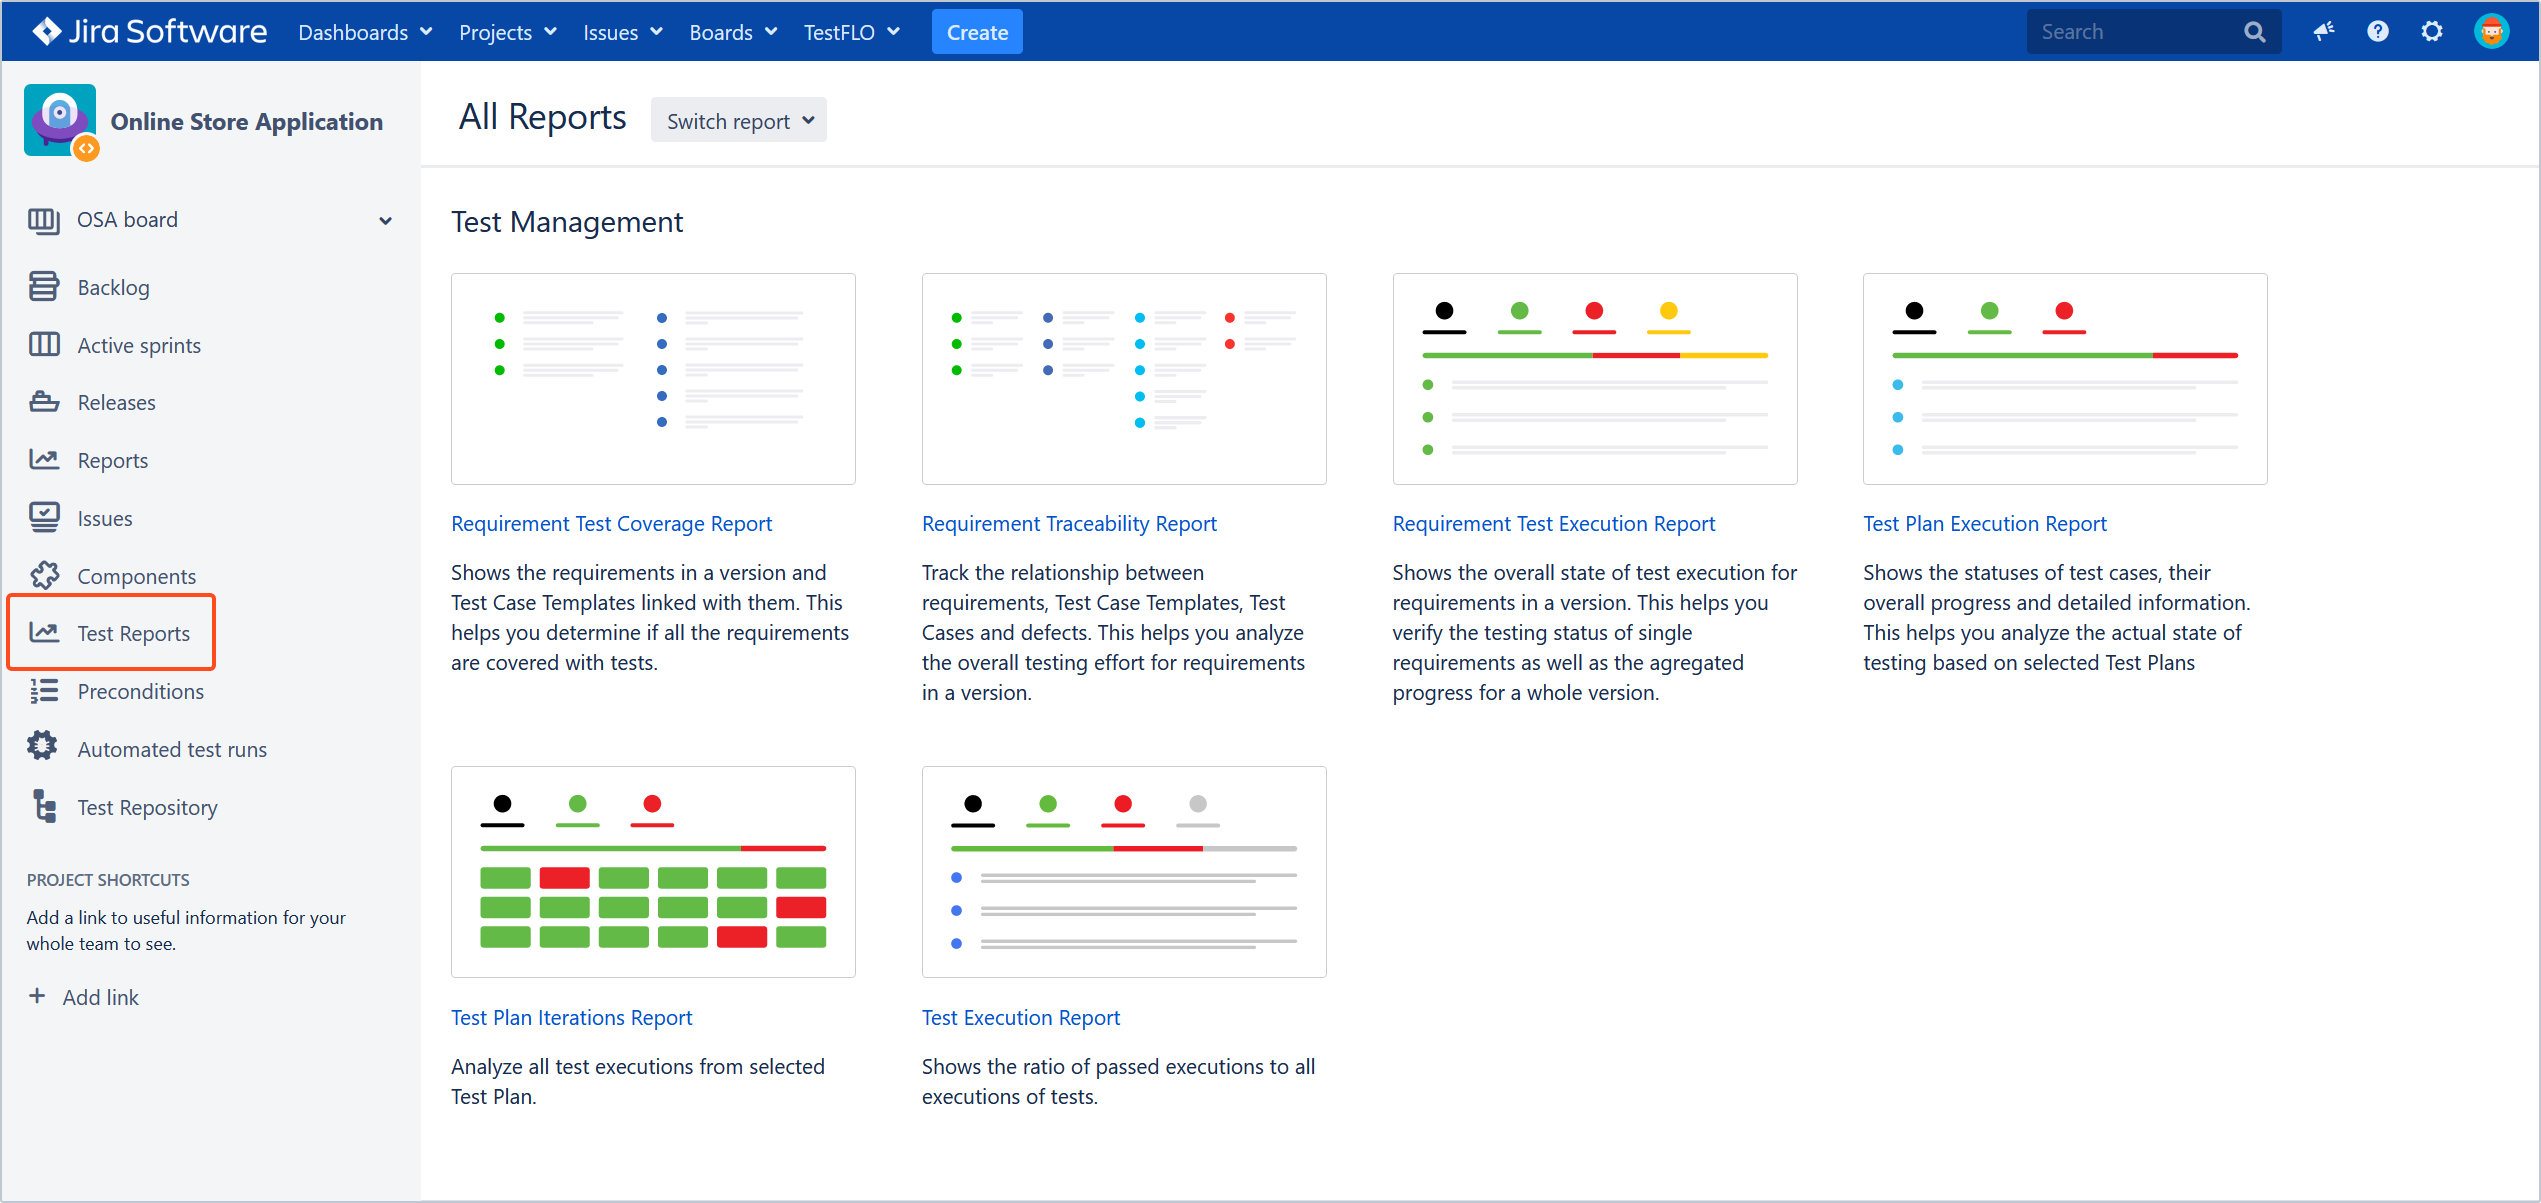 View of Test Reports